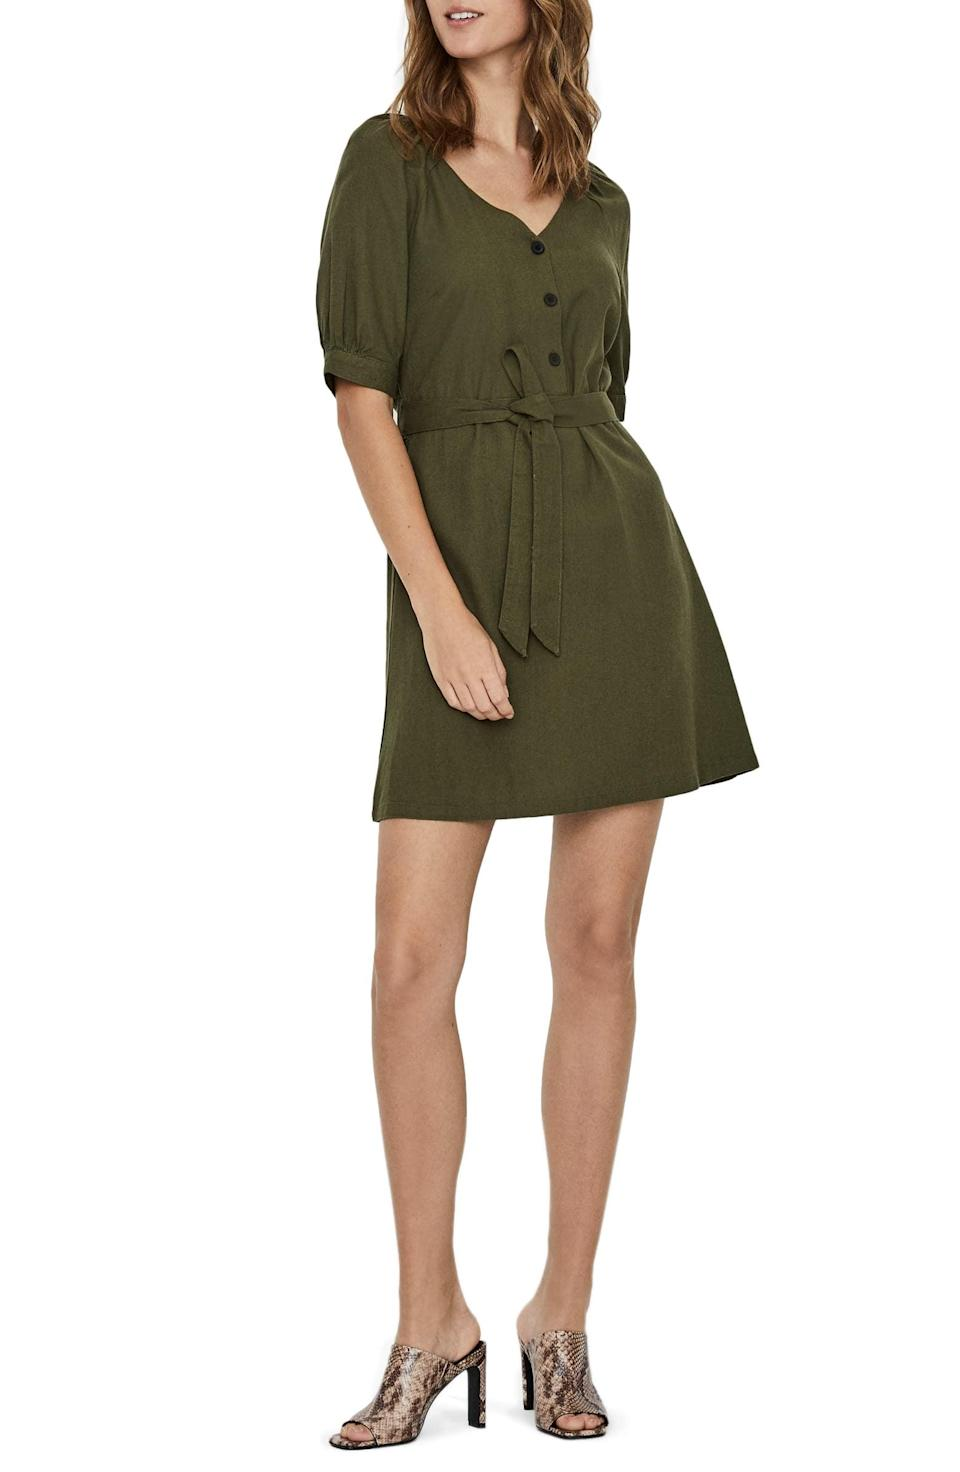 "<p>We love the green color of this <a href=""https://www.popsugar.com/buy/Vero-Moda-Day-Puff-Sleeve-Linen-Blend-Minidress-588372?p_name=Vero%20Moda%20Day%20Puff%20Sleeve%20Linen%20Blend%20Minidress&retailer=nordstrom.com&pid=588372&price=59&evar1=fab%3Aus&evar9=46355415&evar98=https%3A%2F%2Fwww.popsugar.com%2Ffashion%2Fphoto-gallery%2F46355415%2Fimage%2F47609372%2FVero-Moda-Day-Puff-Sleeve-Linen-Blend-Minidress&list1=shopping%2Cdresses%2Csummer%2Cproducts%20under%20%24100%2Csummer%20fashion&prop13=api&pdata=1"" class=""link rapid-noclick-resp"" rel=""nofollow noopener"" target=""_blank"" data-ylk=""slk:Vero Moda Day Puff Sleeve Linen Blend Minidress"">Vero Moda Day Puff Sleeve Linen Blend Minidress</a> ($59).</p>"